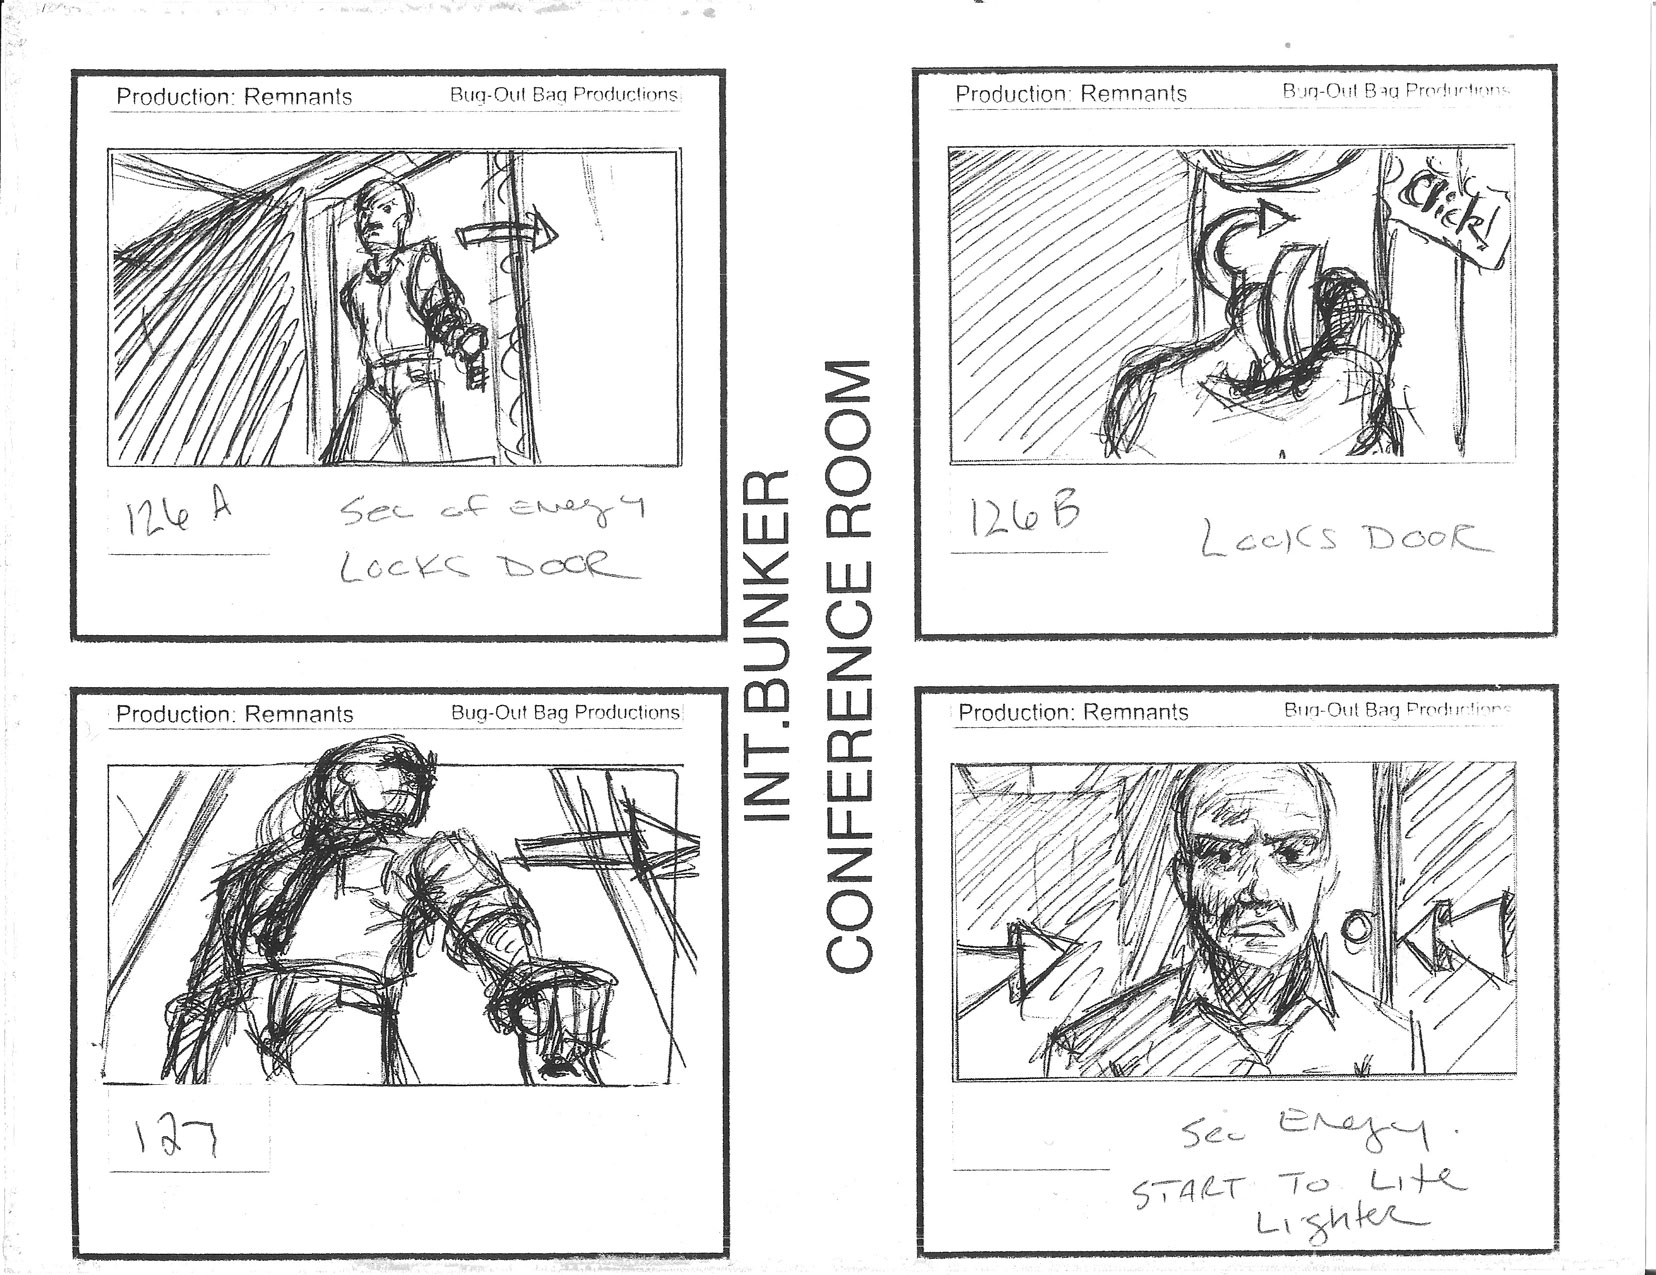 Remnants_storyboards_054.jpg